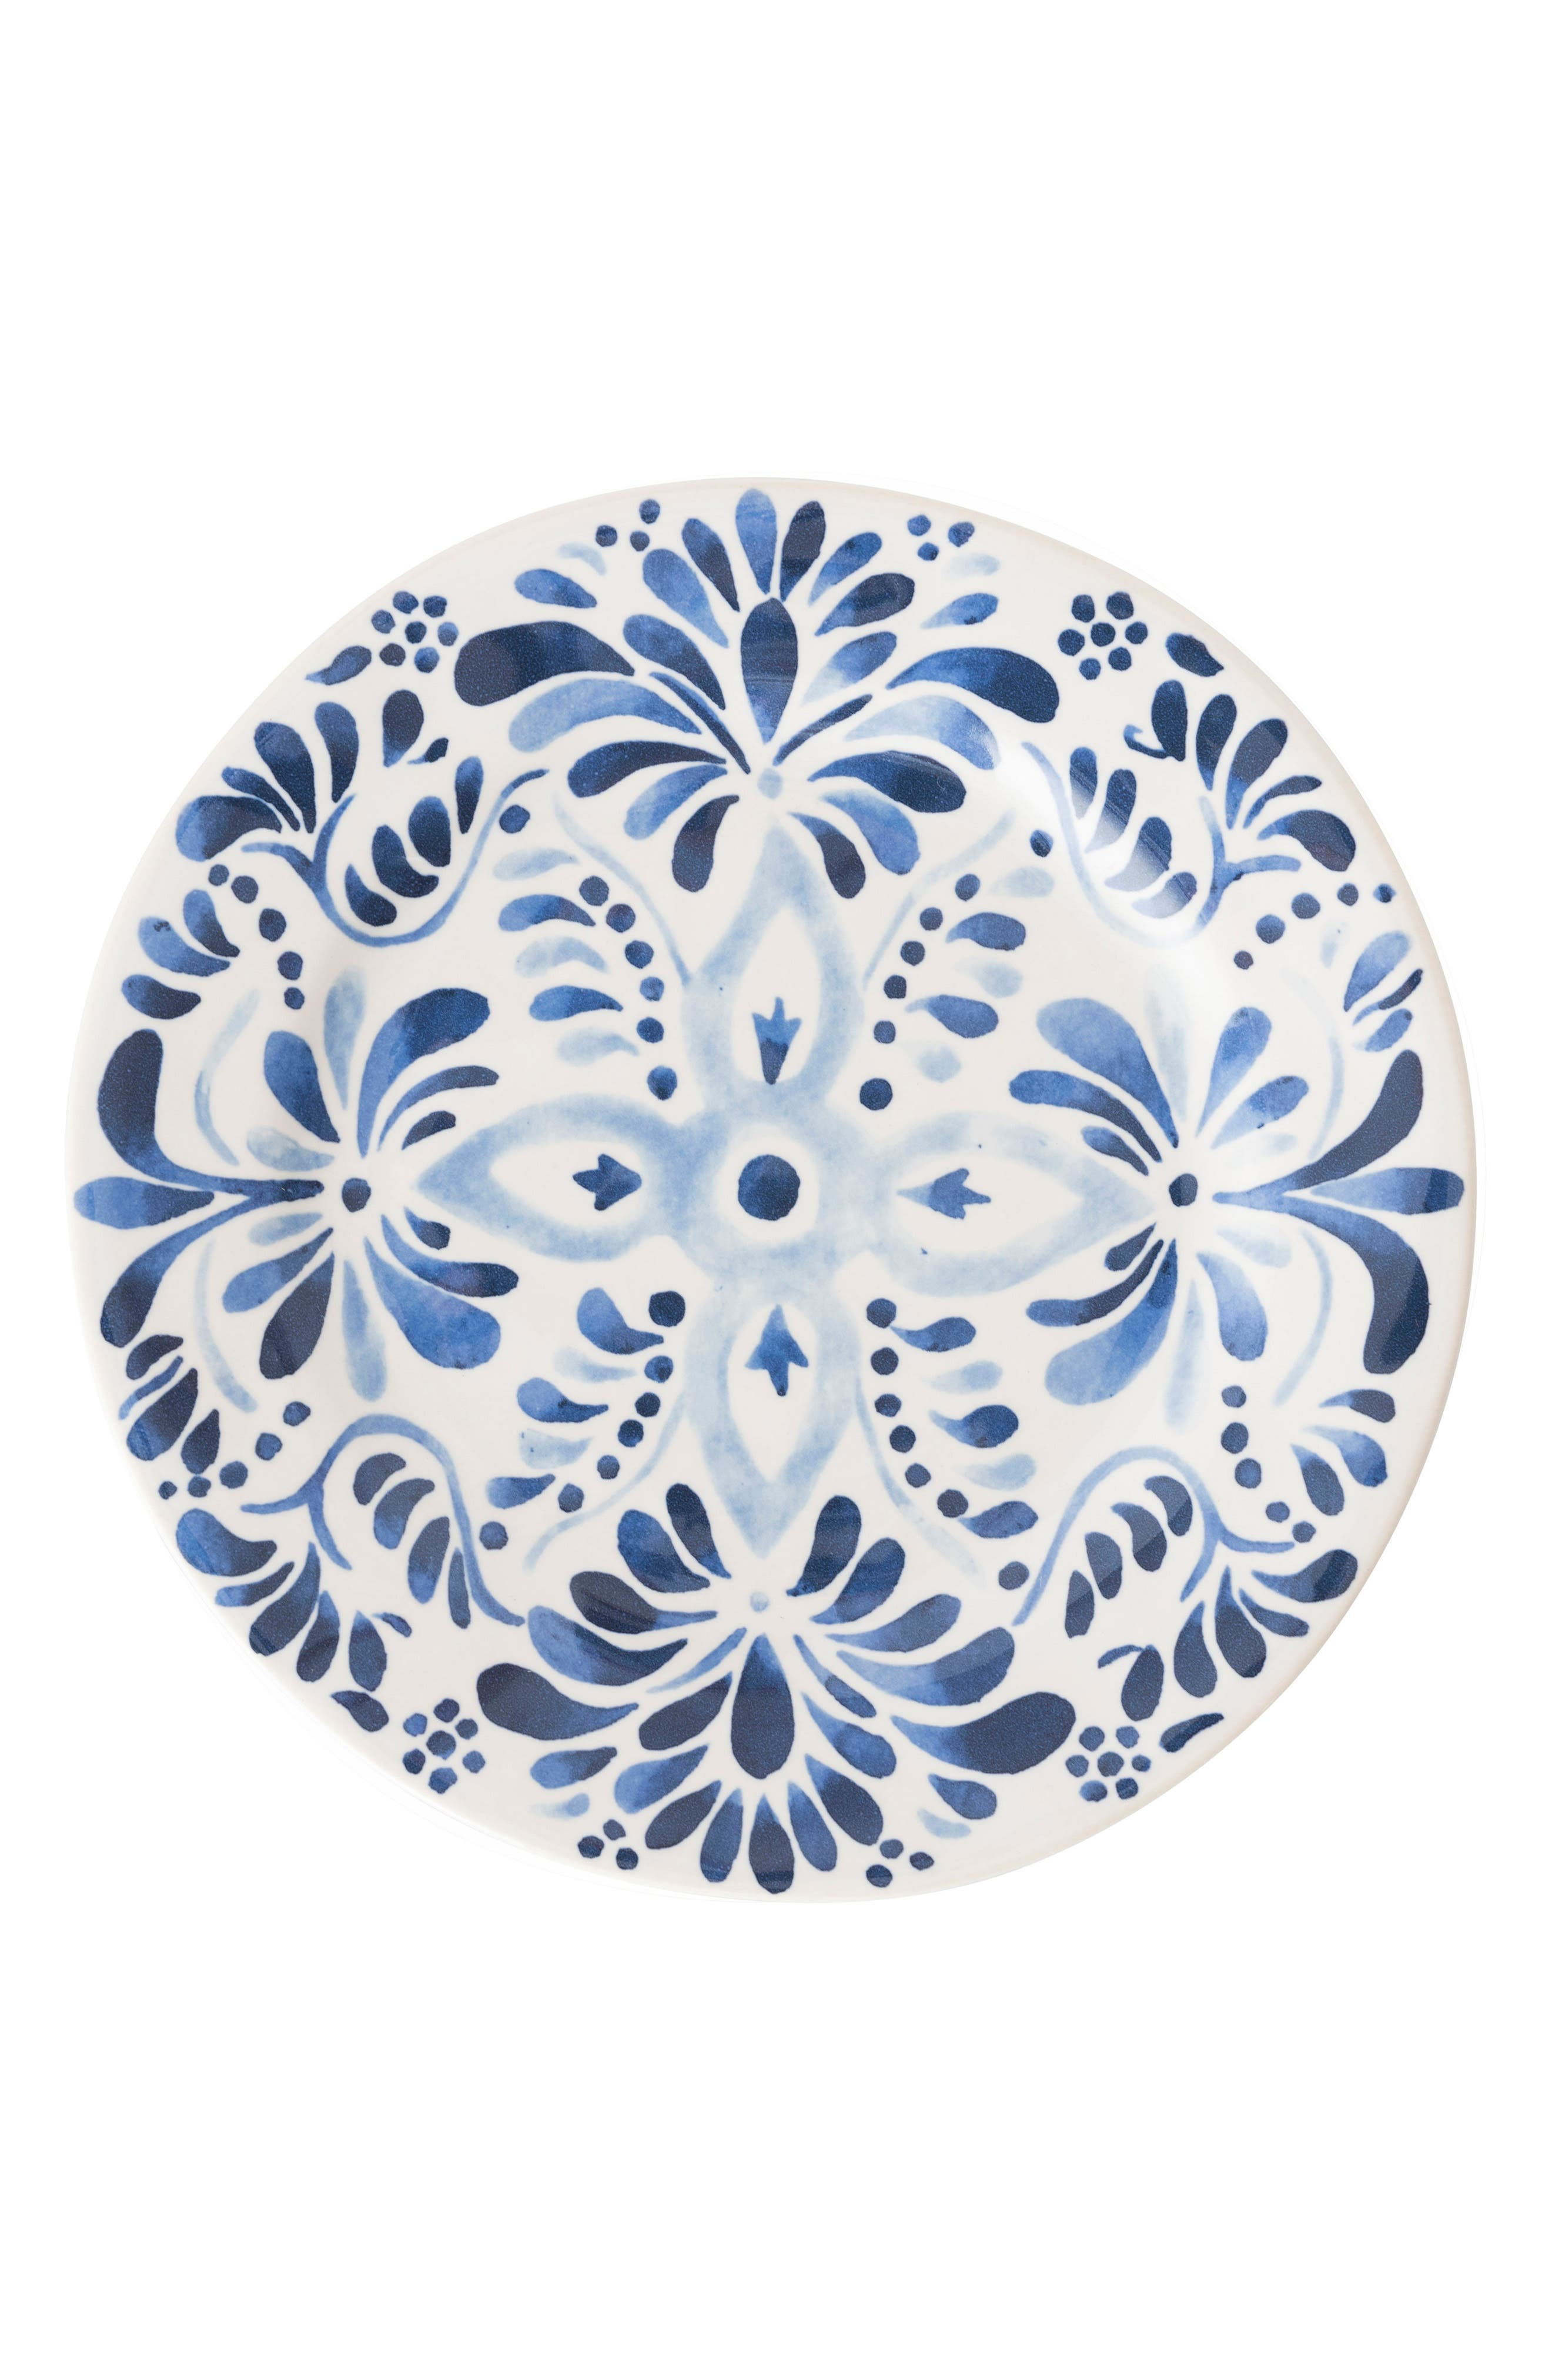 Juliska Wanderlust Collection - Sitio Stripe Stoneware Dinner Plate